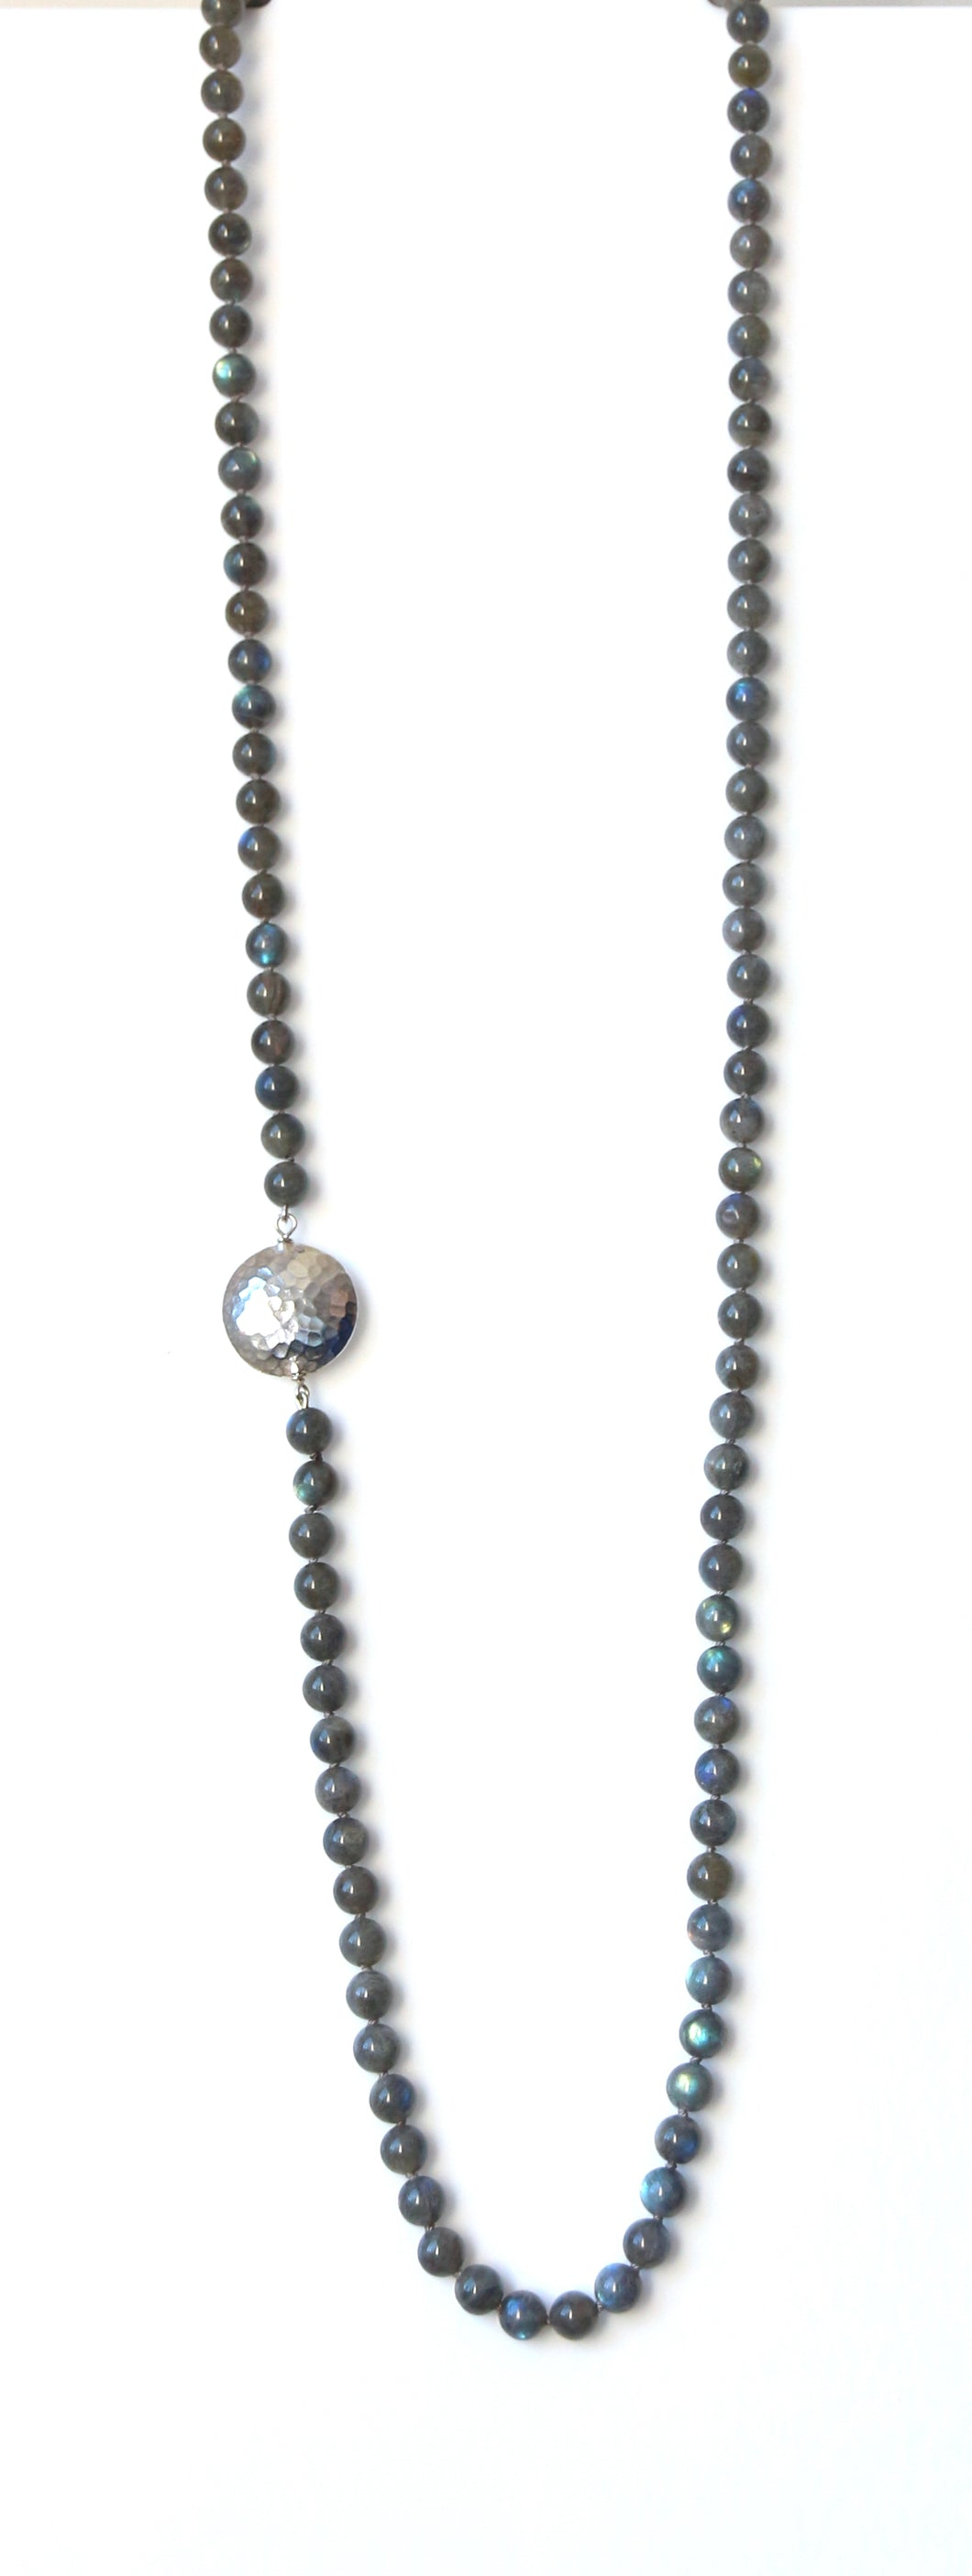 Australian Handmade Grey Long Necklace with Labradorite and Sterling Silver Feature side piece